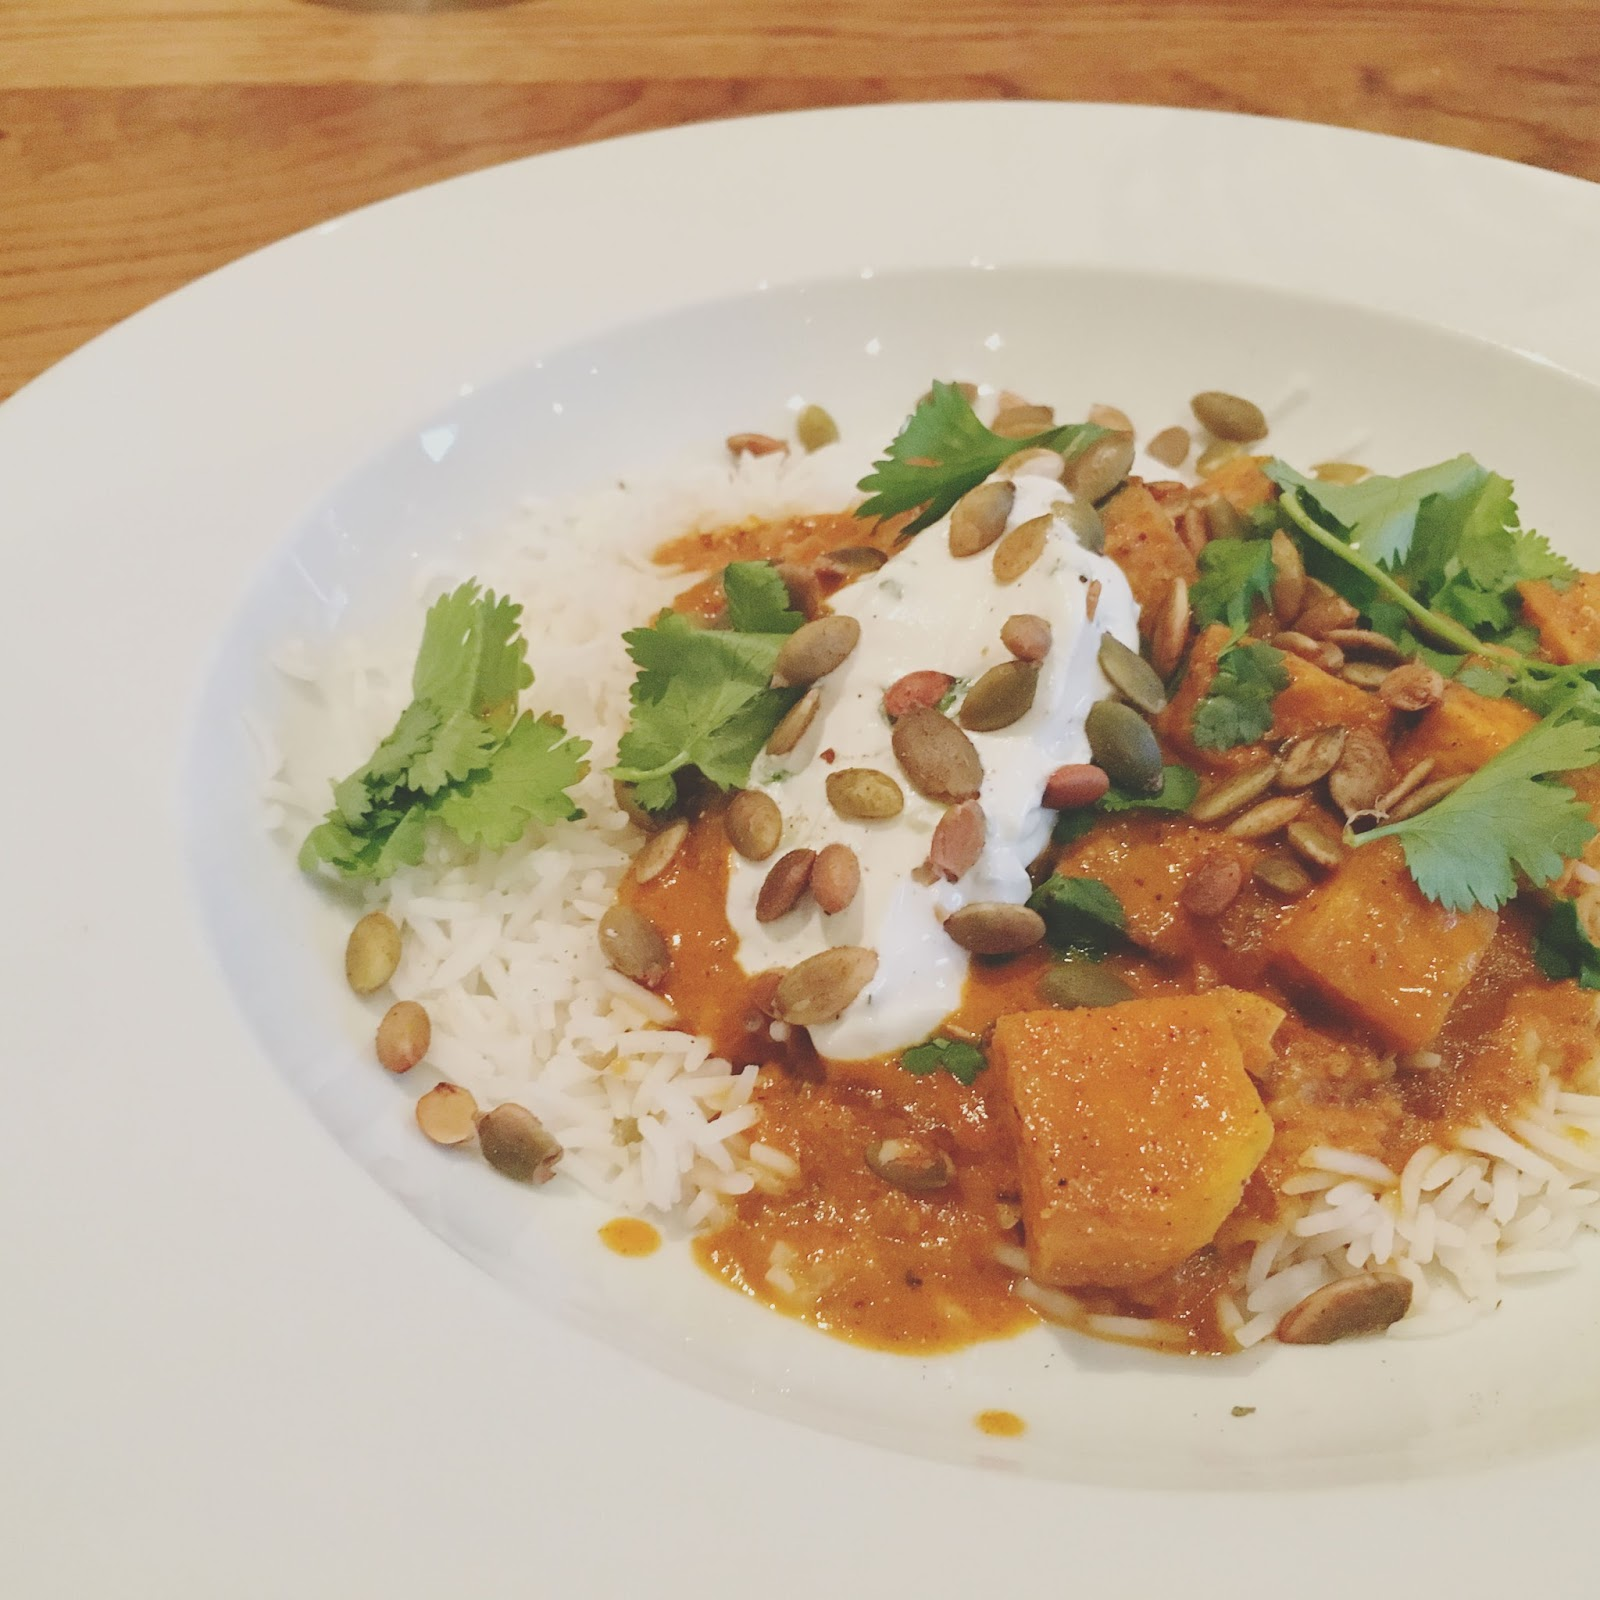 vegetarian tikka masala at Hunky Dory - A restaurant in Houston, Texas